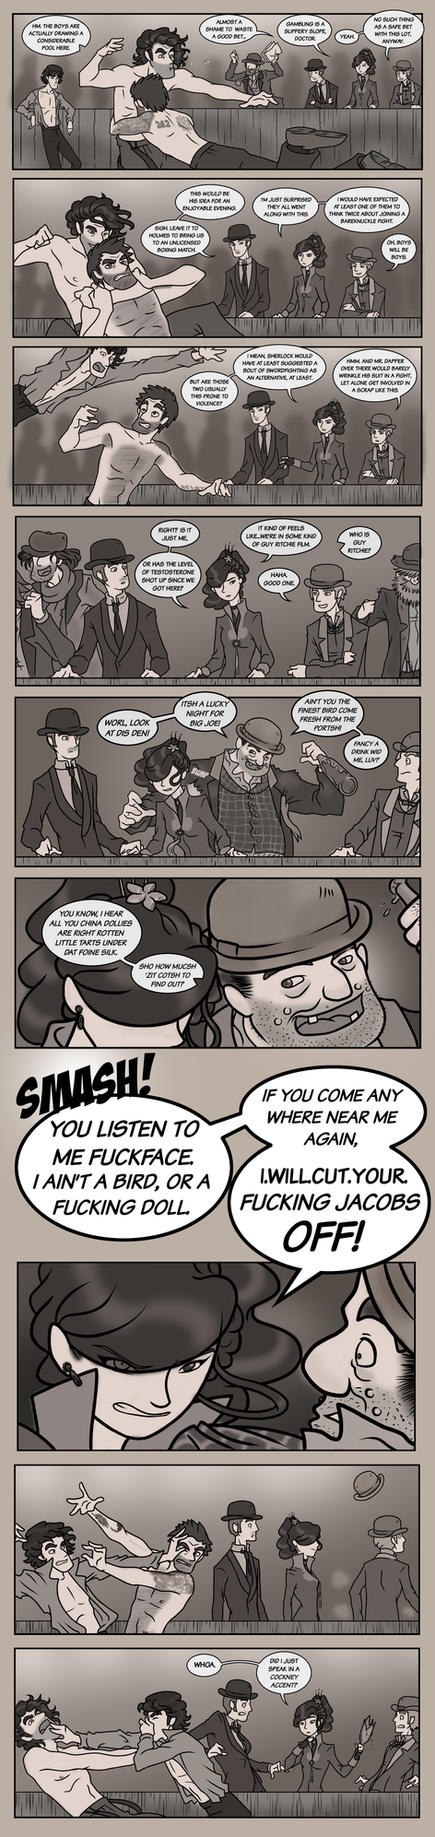 Elementary/Sherlock Special: Part Thirteen by maryfgr23